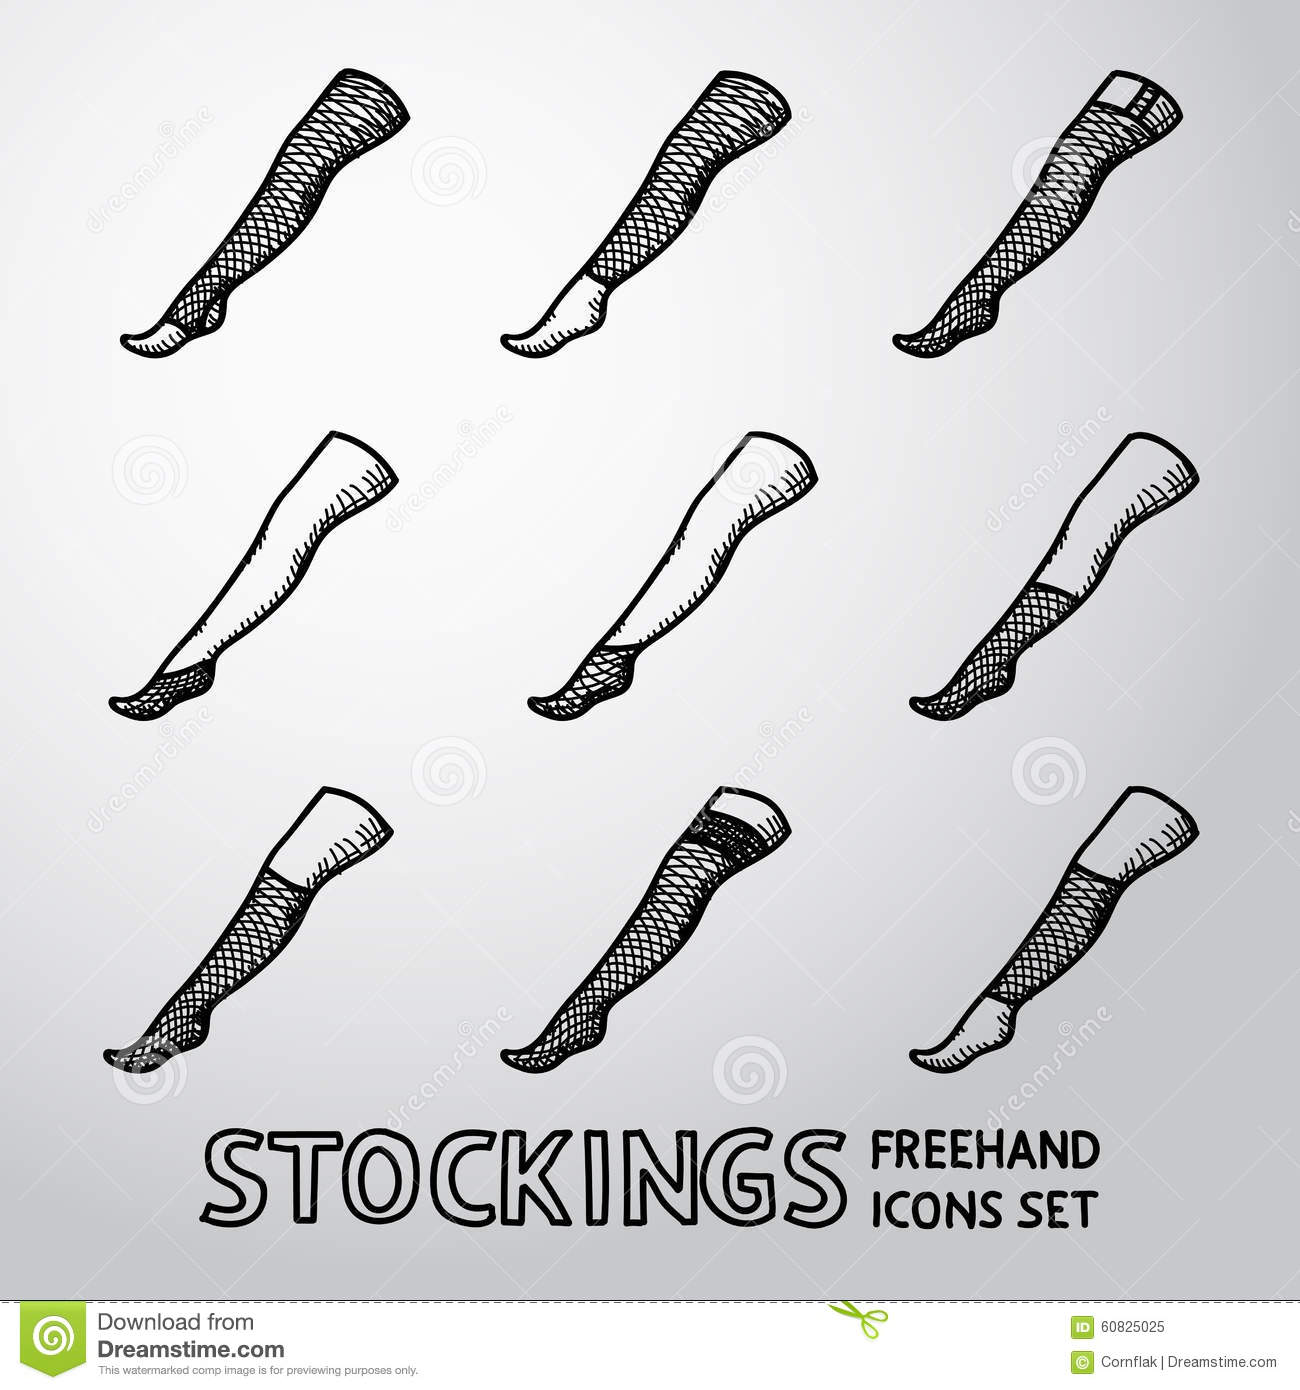 Set of handdrawn STOCKINGS icons with different